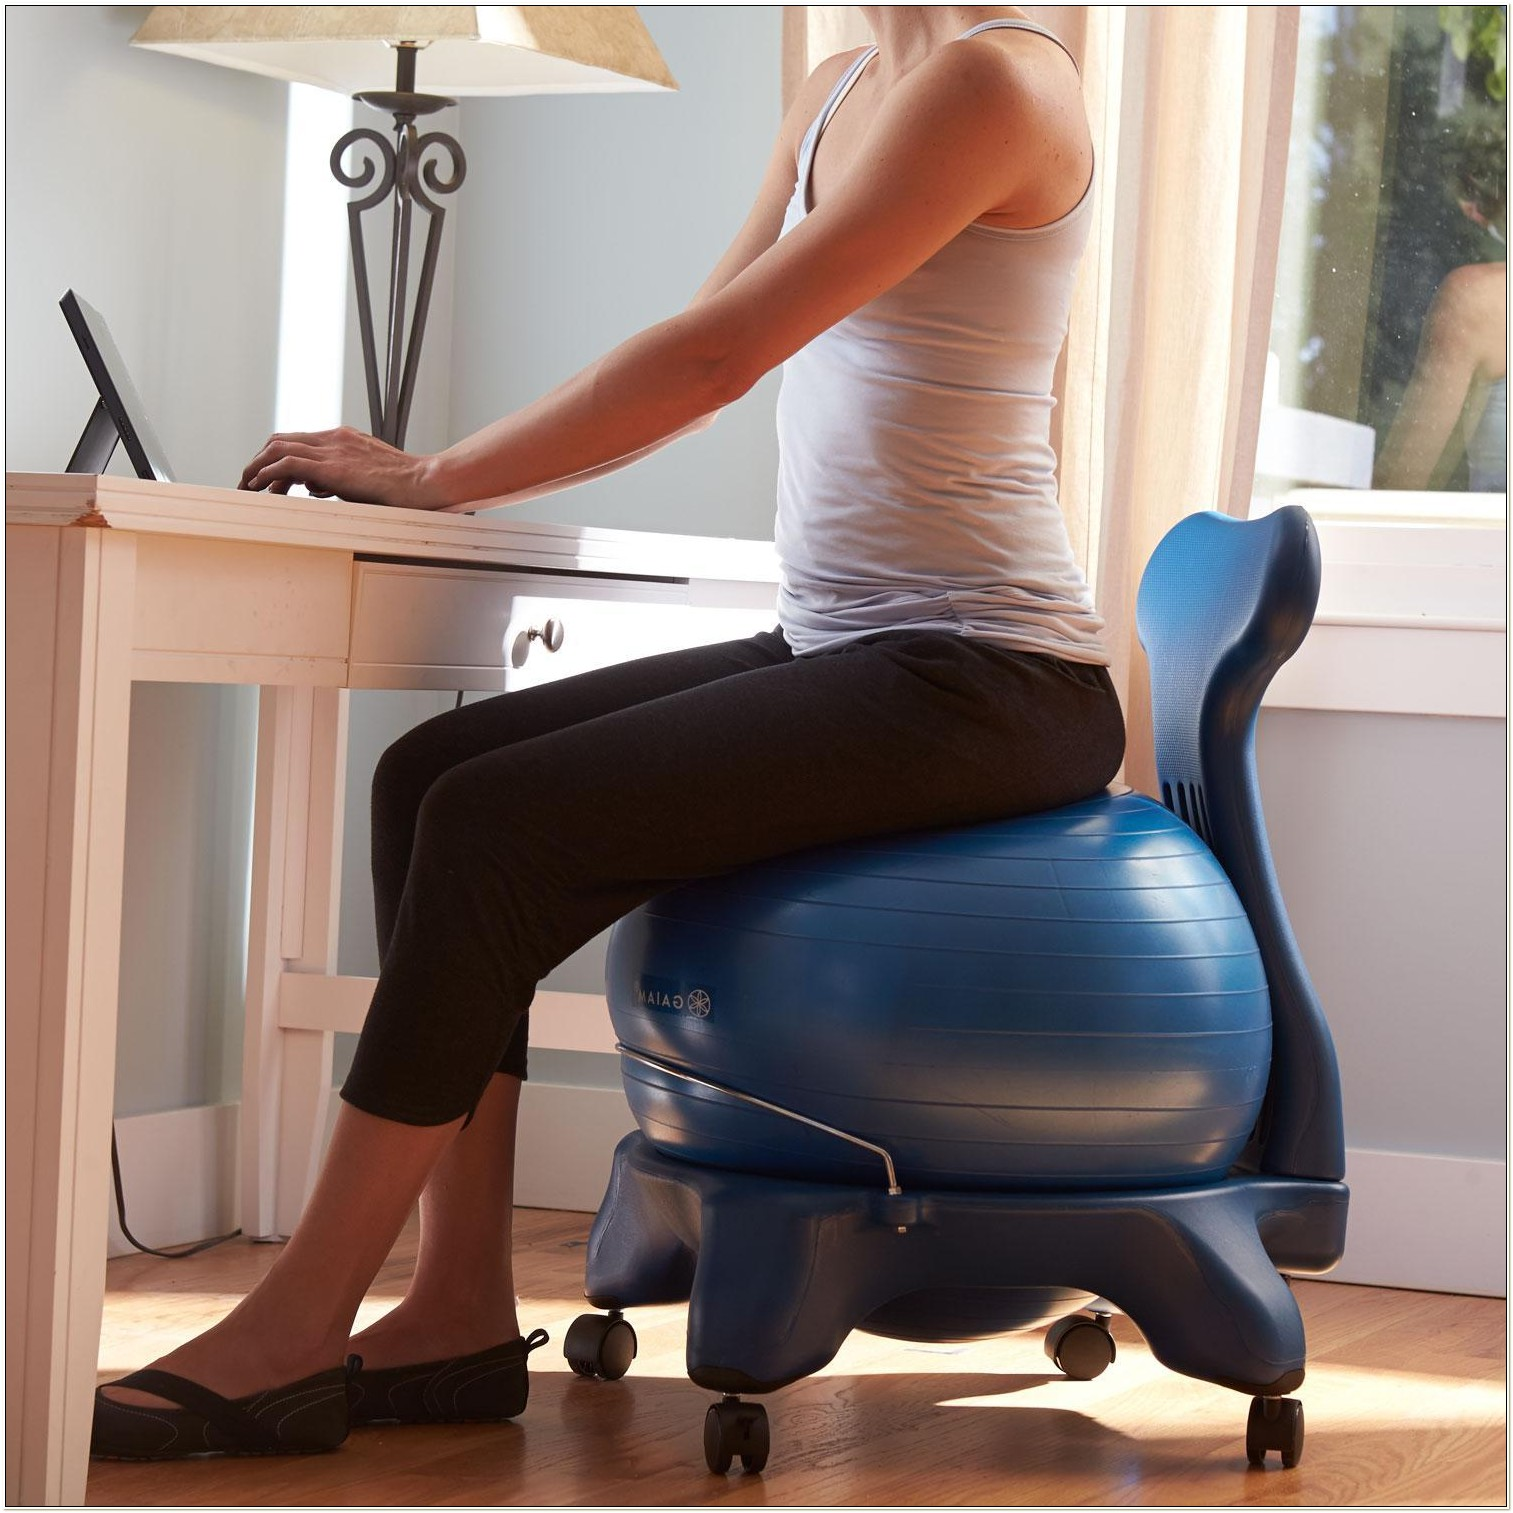 Gaiam Balance Ball Chair Benefits